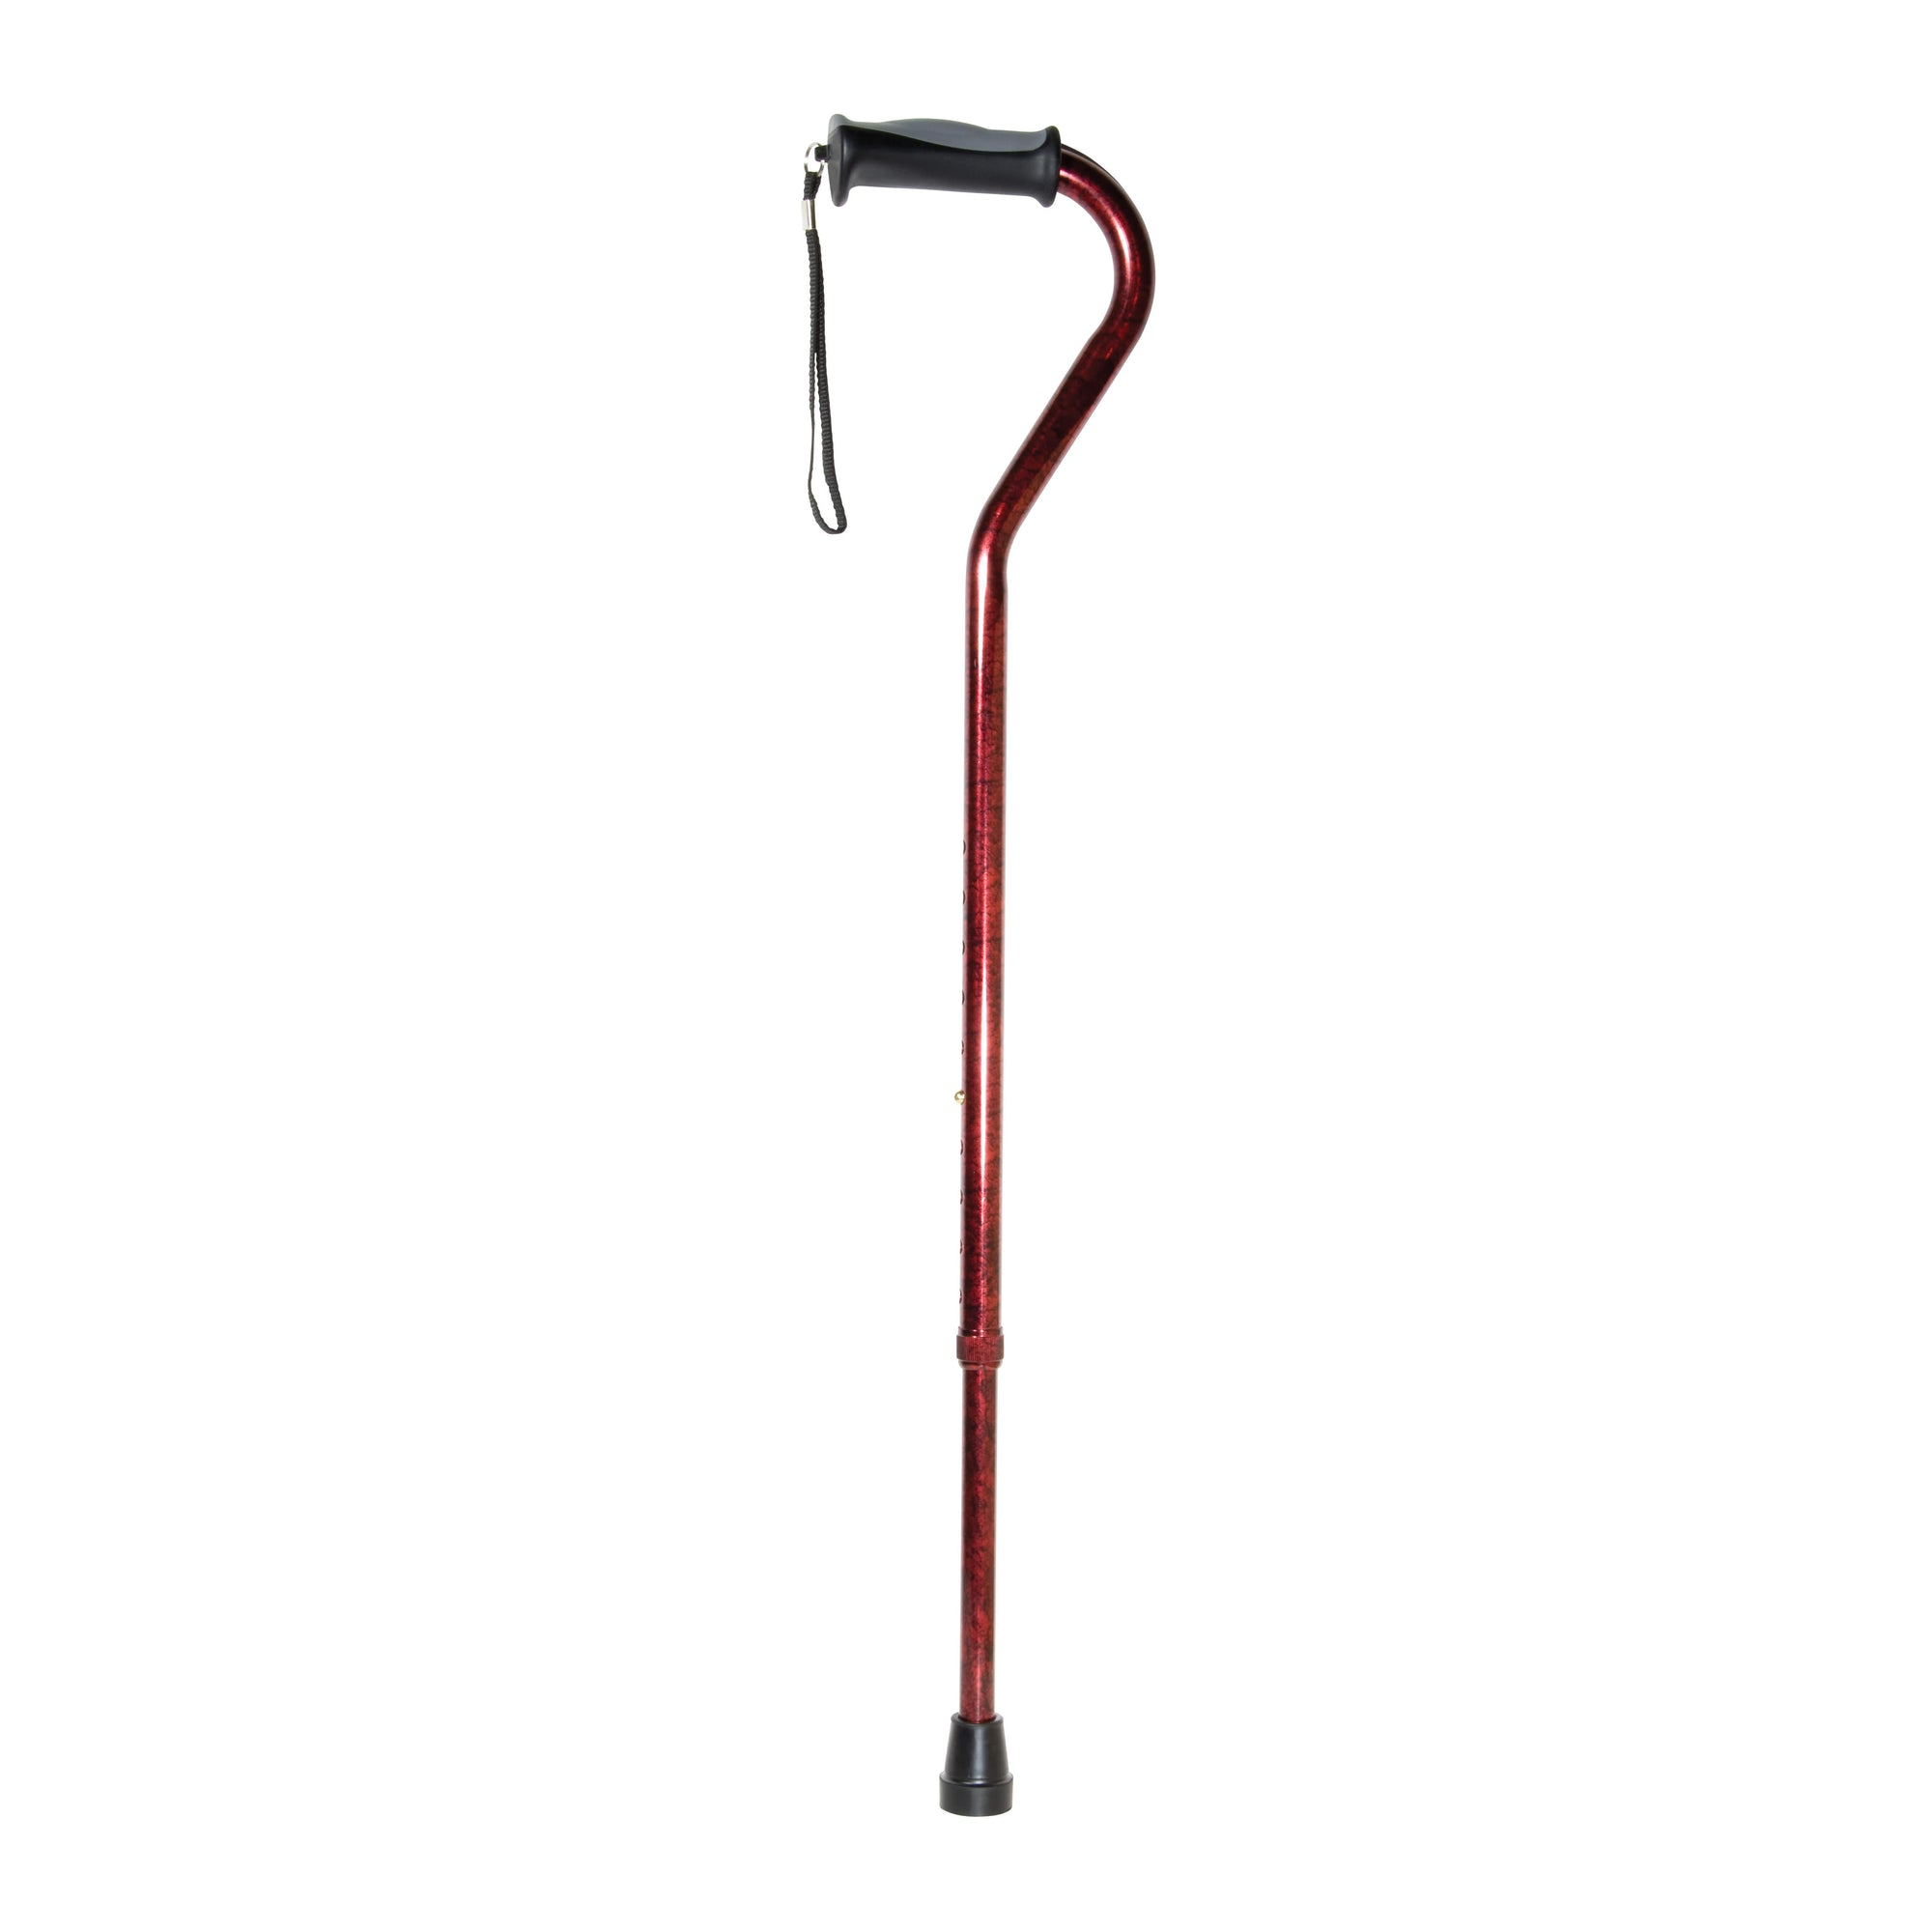 Drive Adjustable Offset Cane with Gel Grip-Blue Crackle